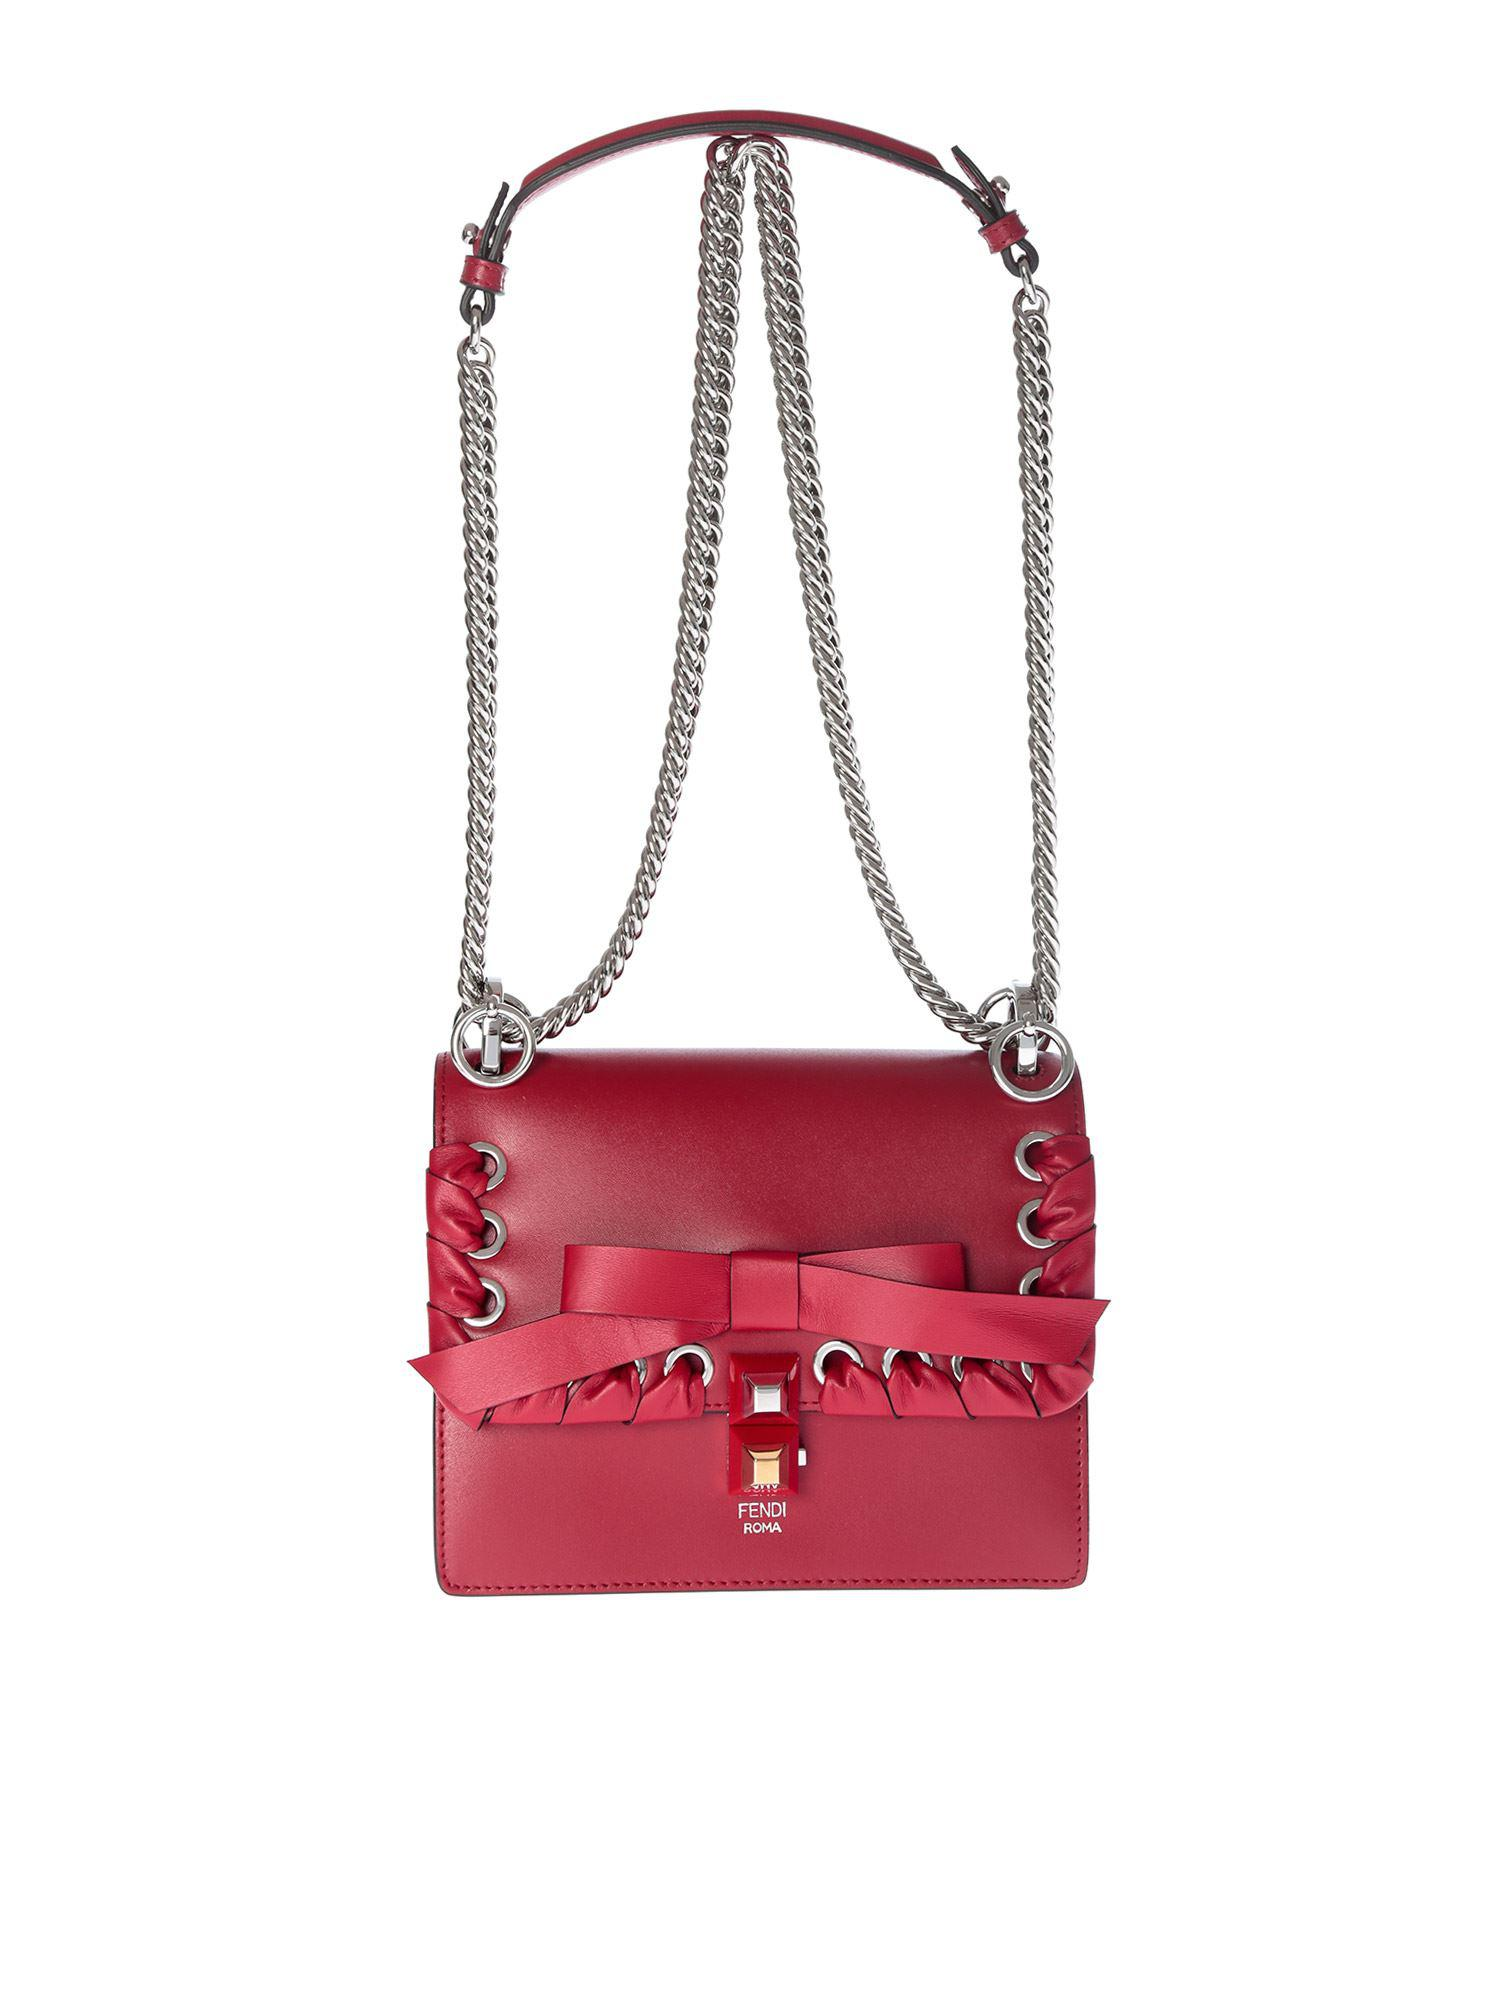 e92ca4db03 Fendi Red Kan I Small Bag With Ribbon in Red - Lyst